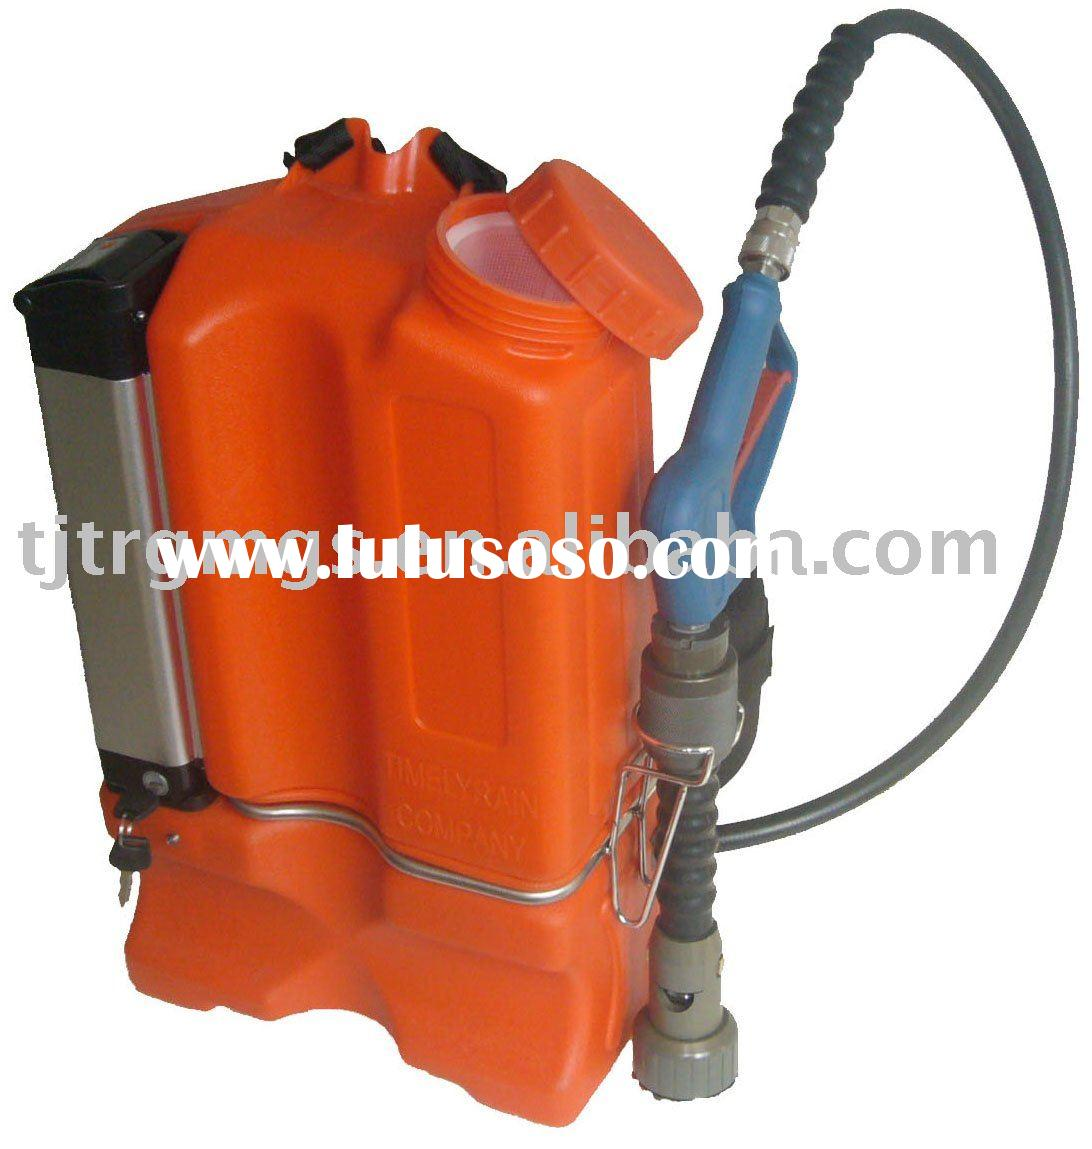 Portable Water Mist Fire Fighting extinguisher(Battery powered)